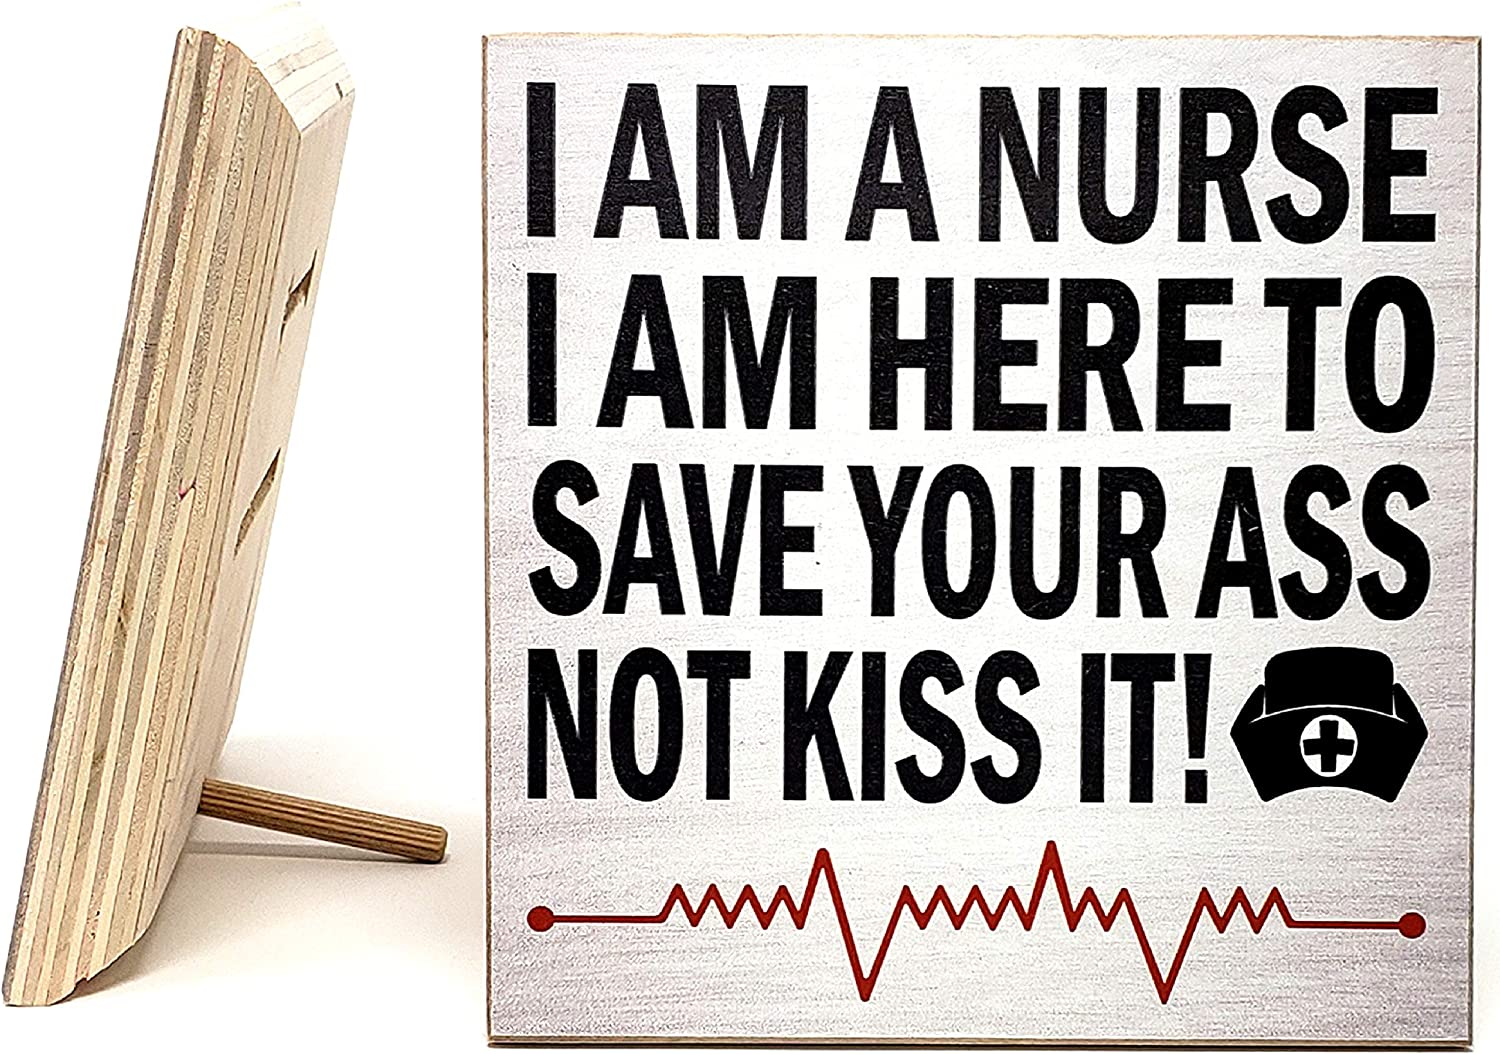 JennyGems Nurse Gift Sign| Funny Nurse Plaque Sign | Gift for Nurse | Nurses Gift | Wood Sign Hangs or Stands (White)| Made in USA